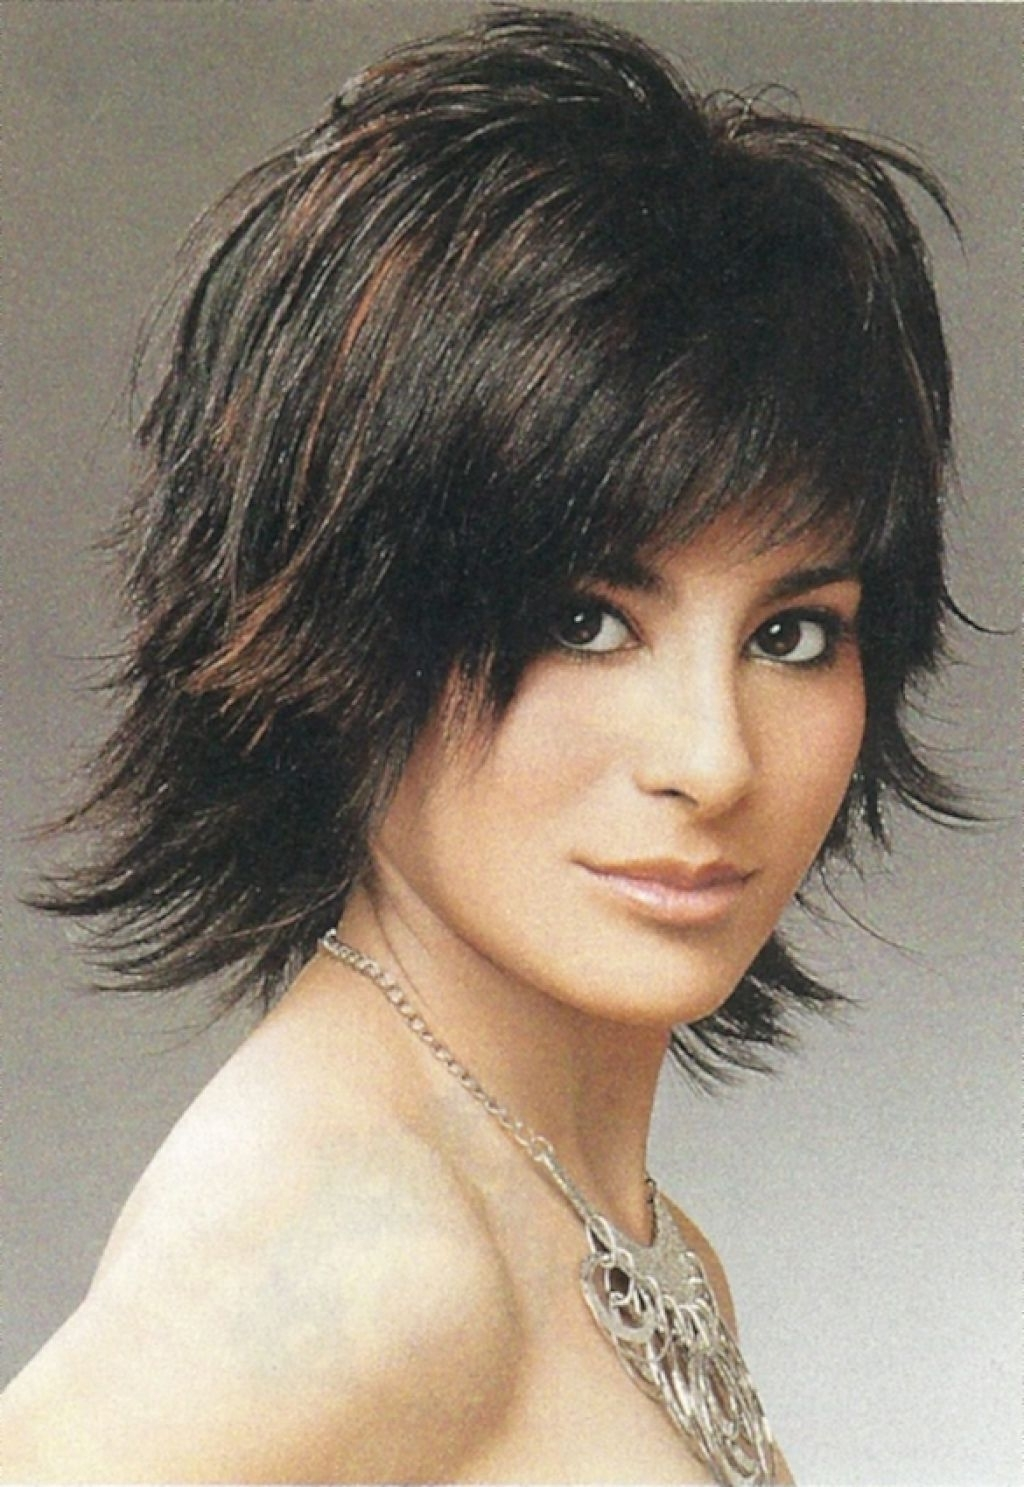 Messy Shaggy Hairstyles For Women (View 5 of 15)